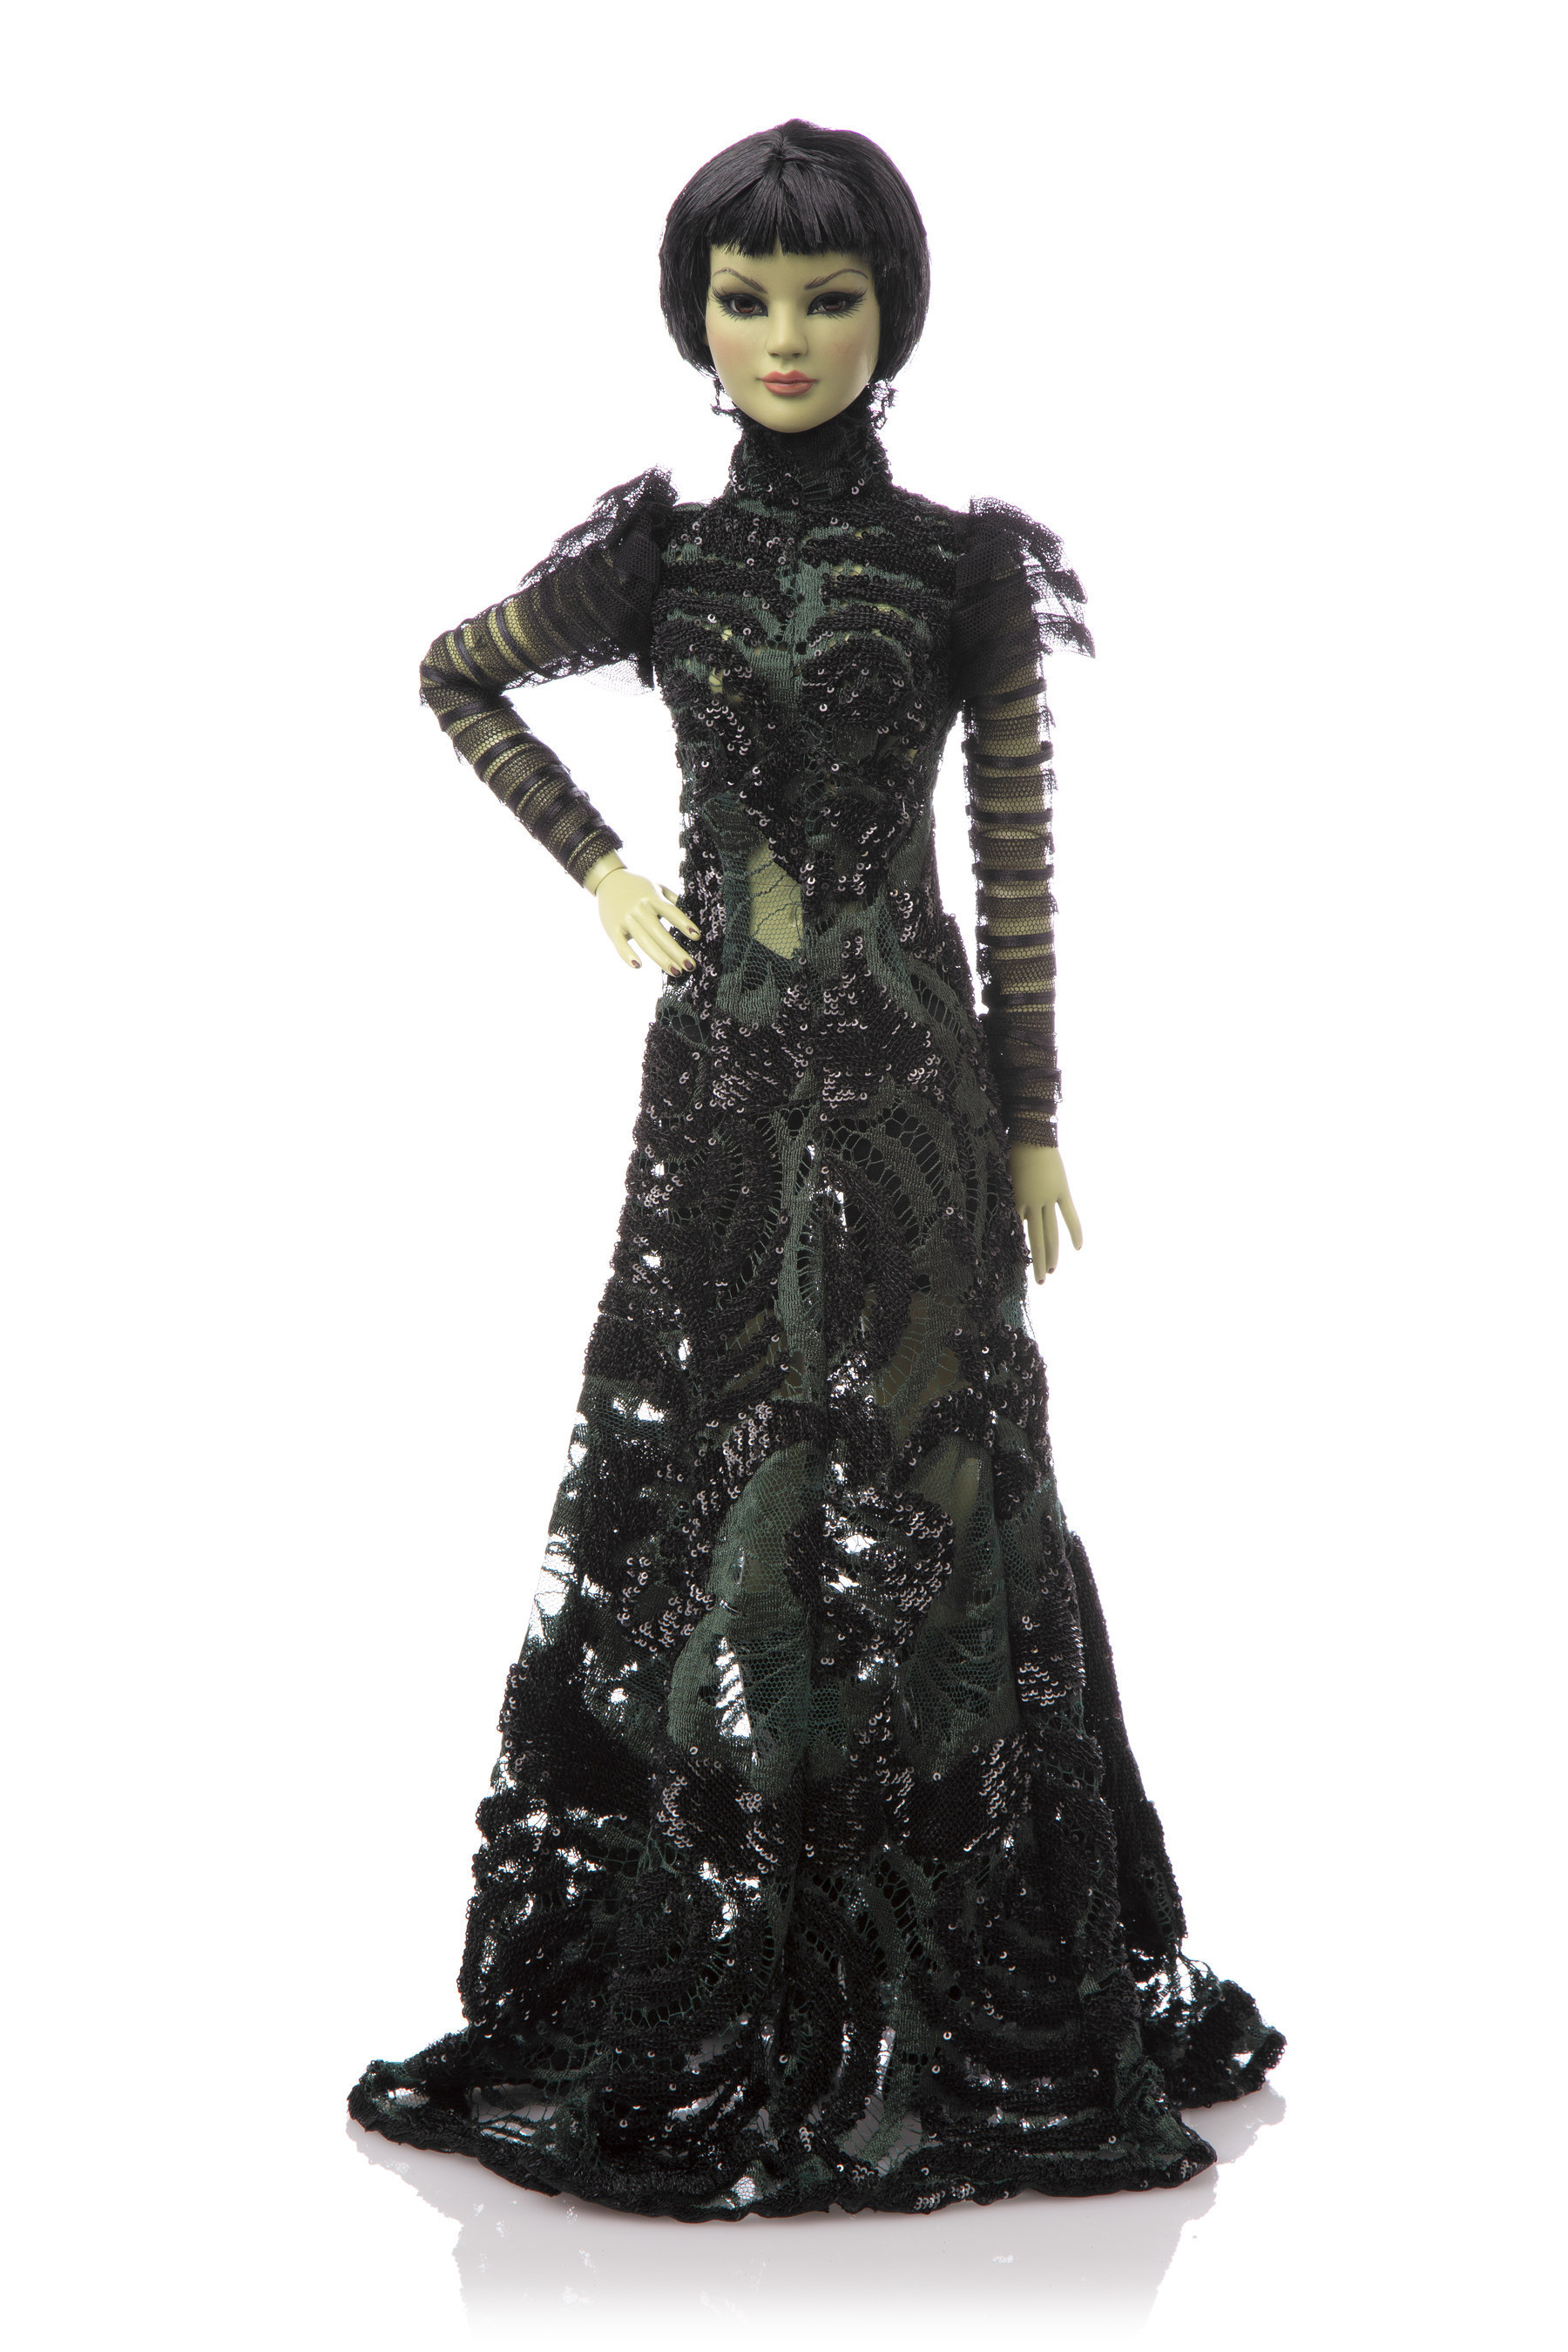 Warner Bros Debuts WIZARD OF OZ Haute Couture Dolls In Celebration of Film's 75th Anniversary